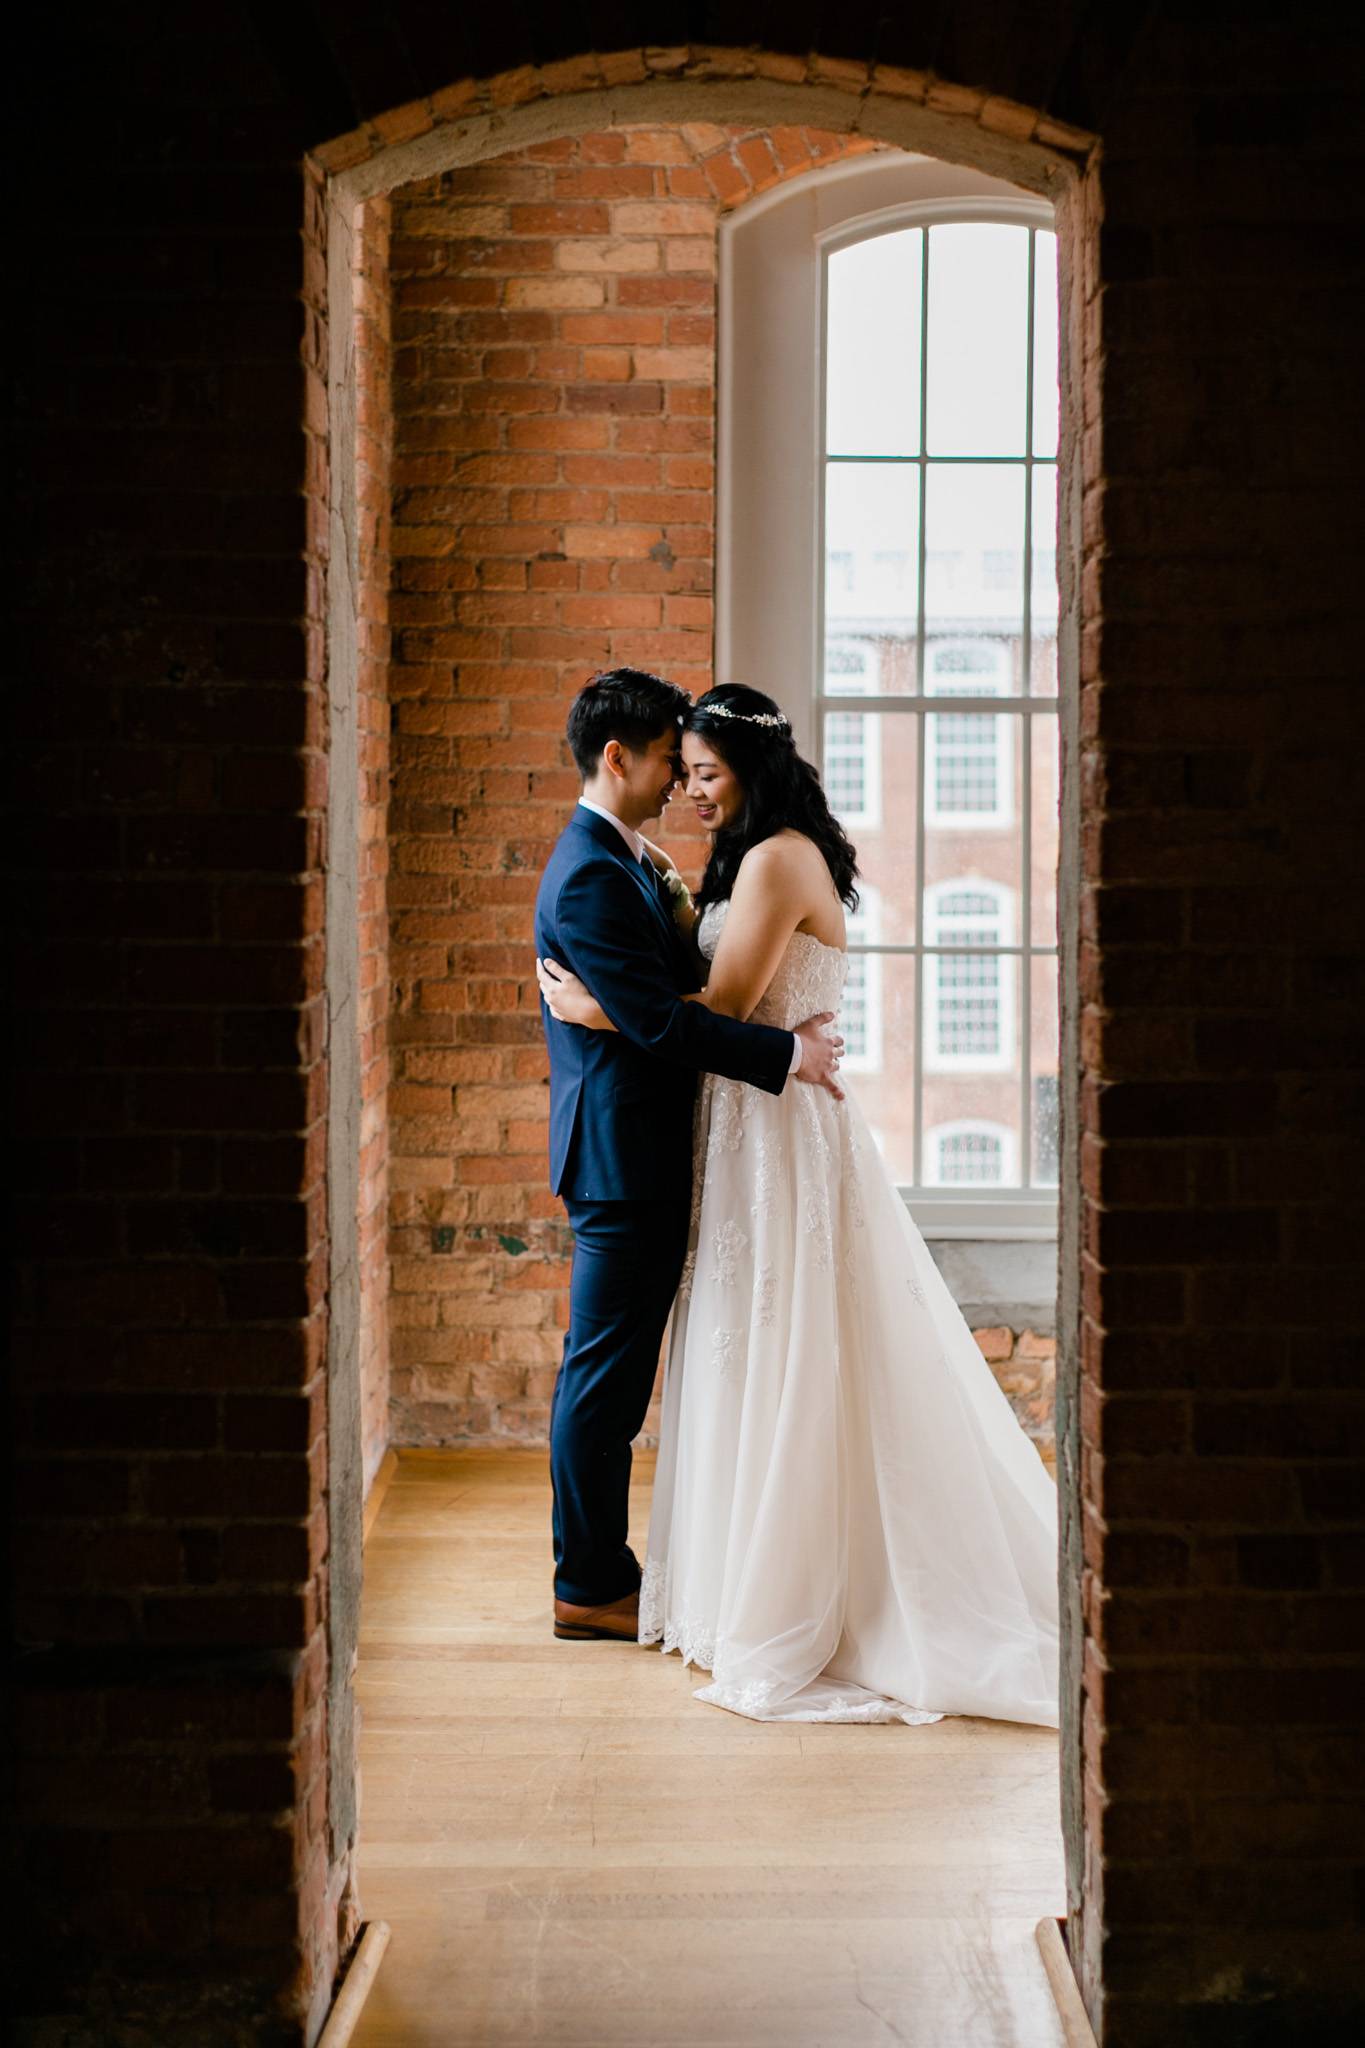 Beautiful portrait of bride and groom | Durham Wedding Photographer | The Cotton Room | By G. Lin Photography